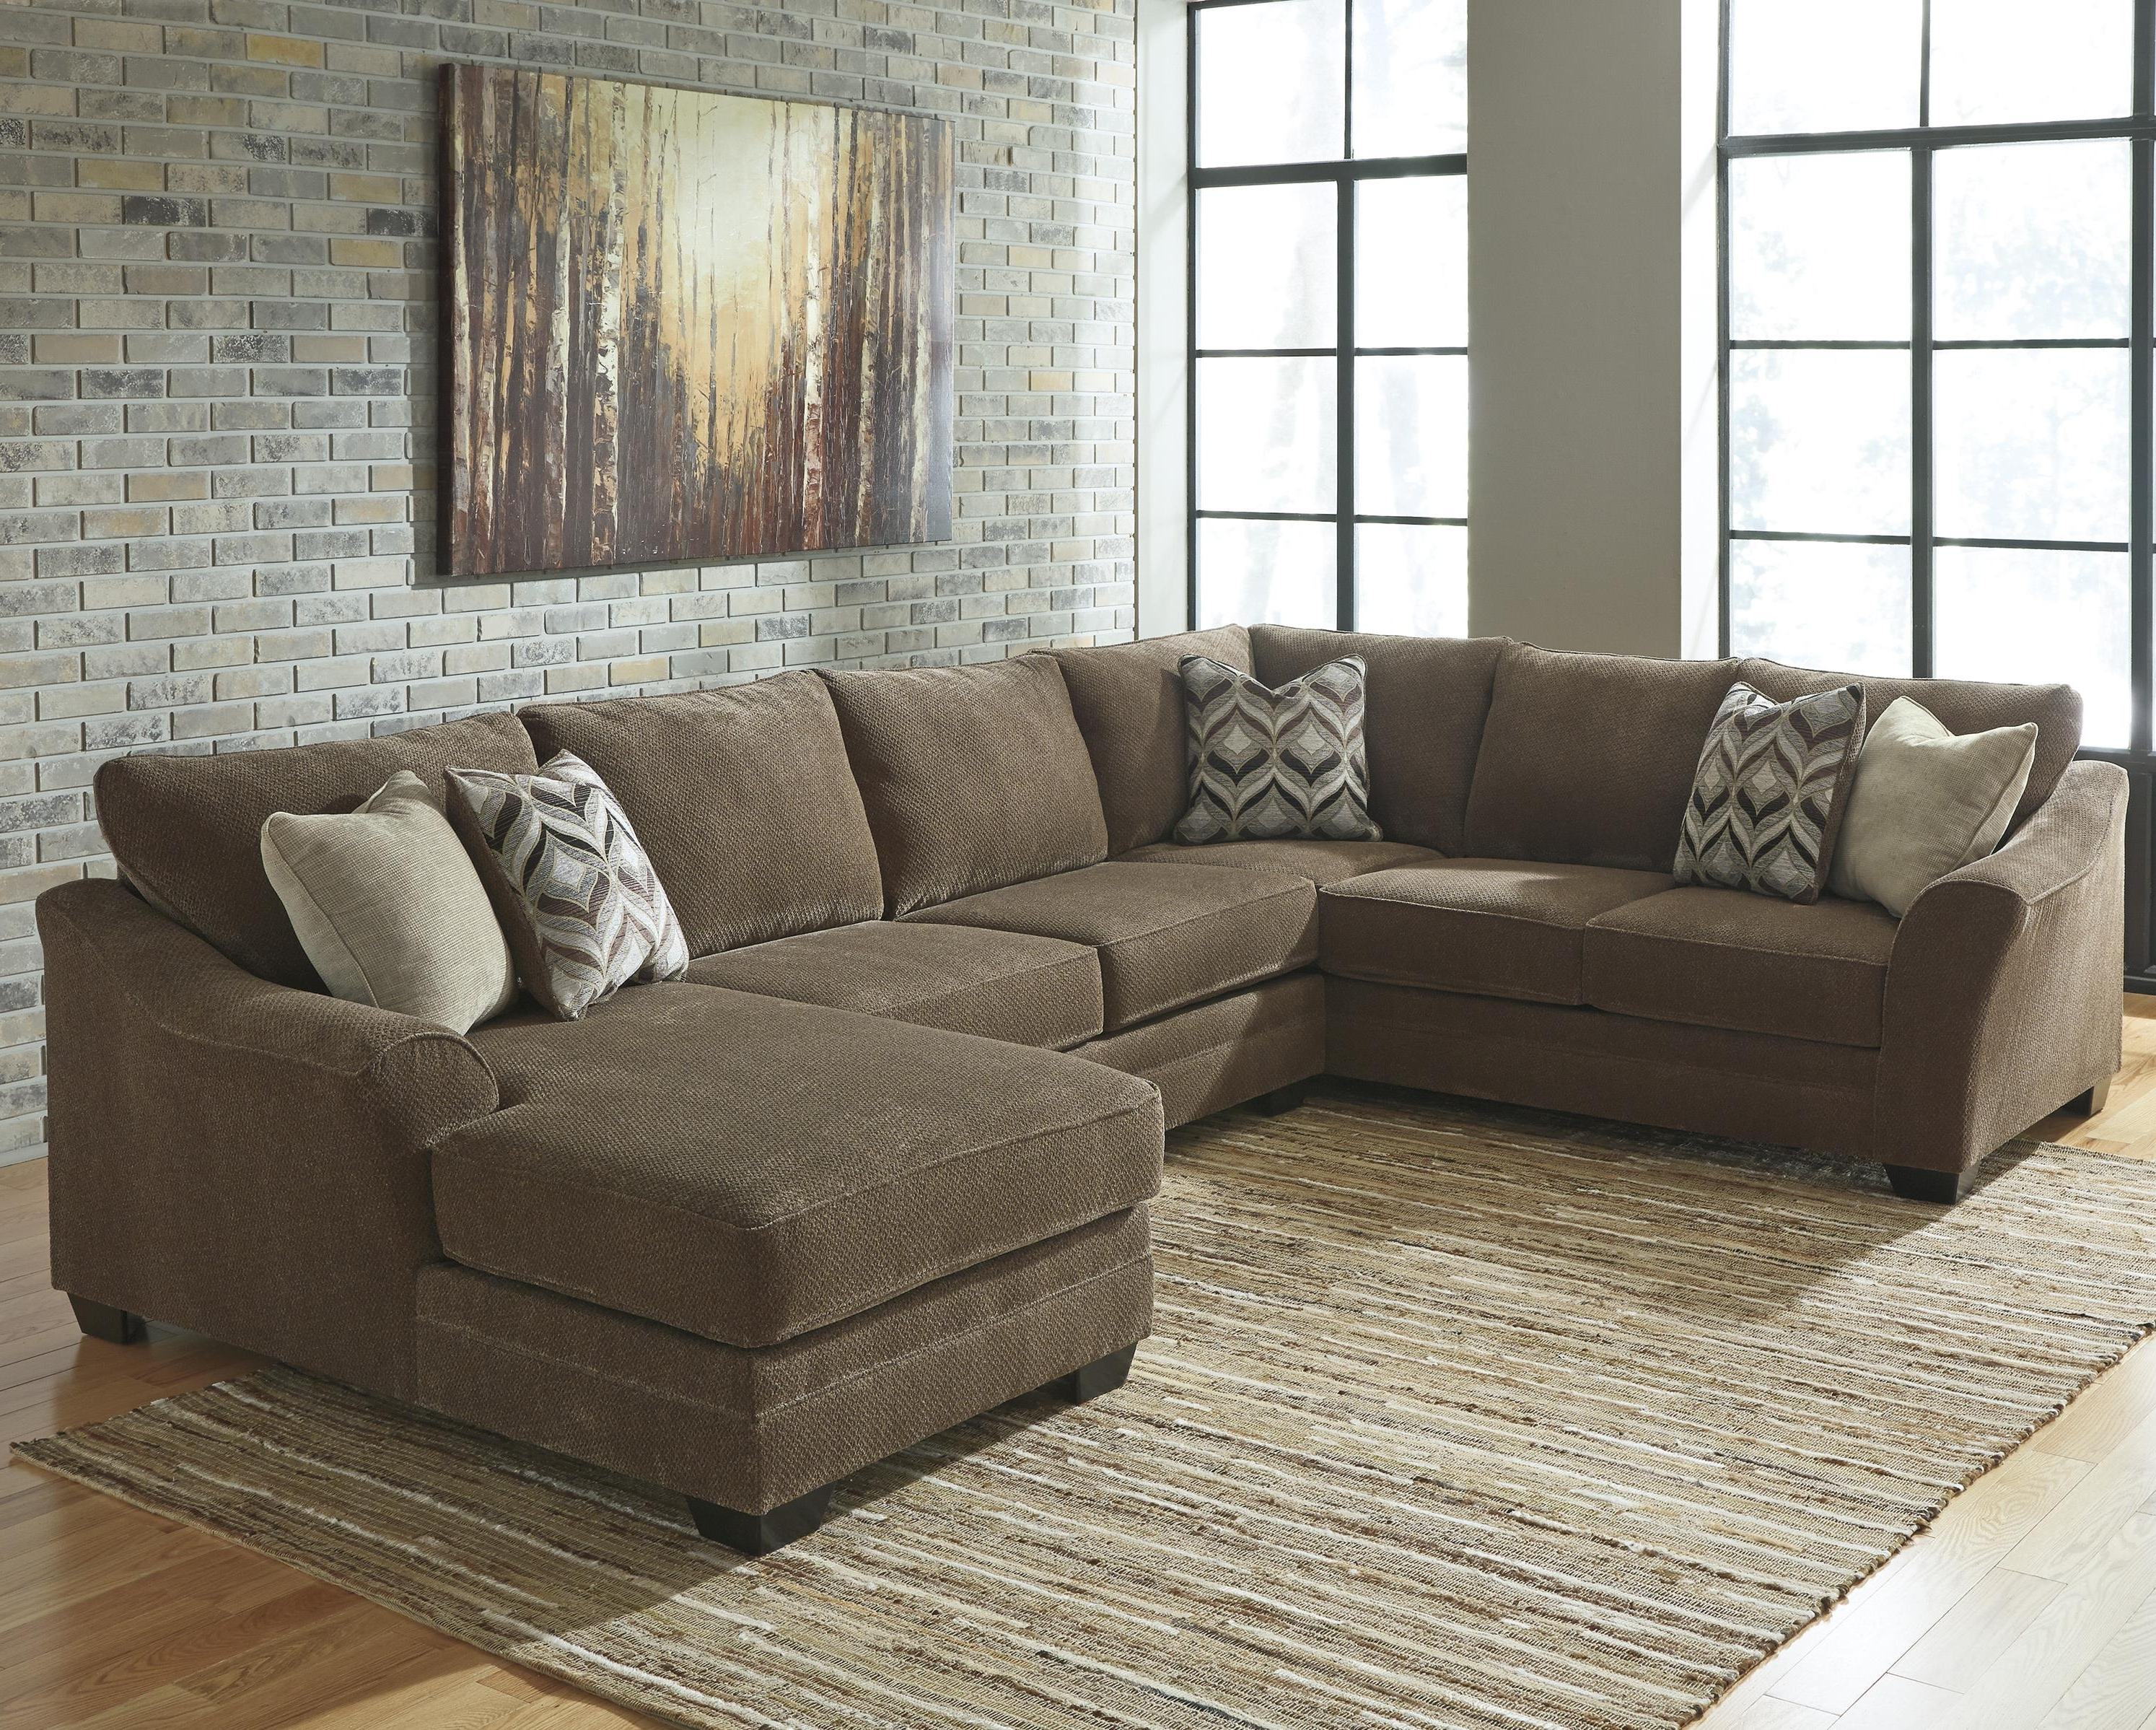 Clearance Sectional Sofas Within Newest Ethan Allen Sofas Clearance Sectional Couch With Recliner Big Lots (View 6 of 15)